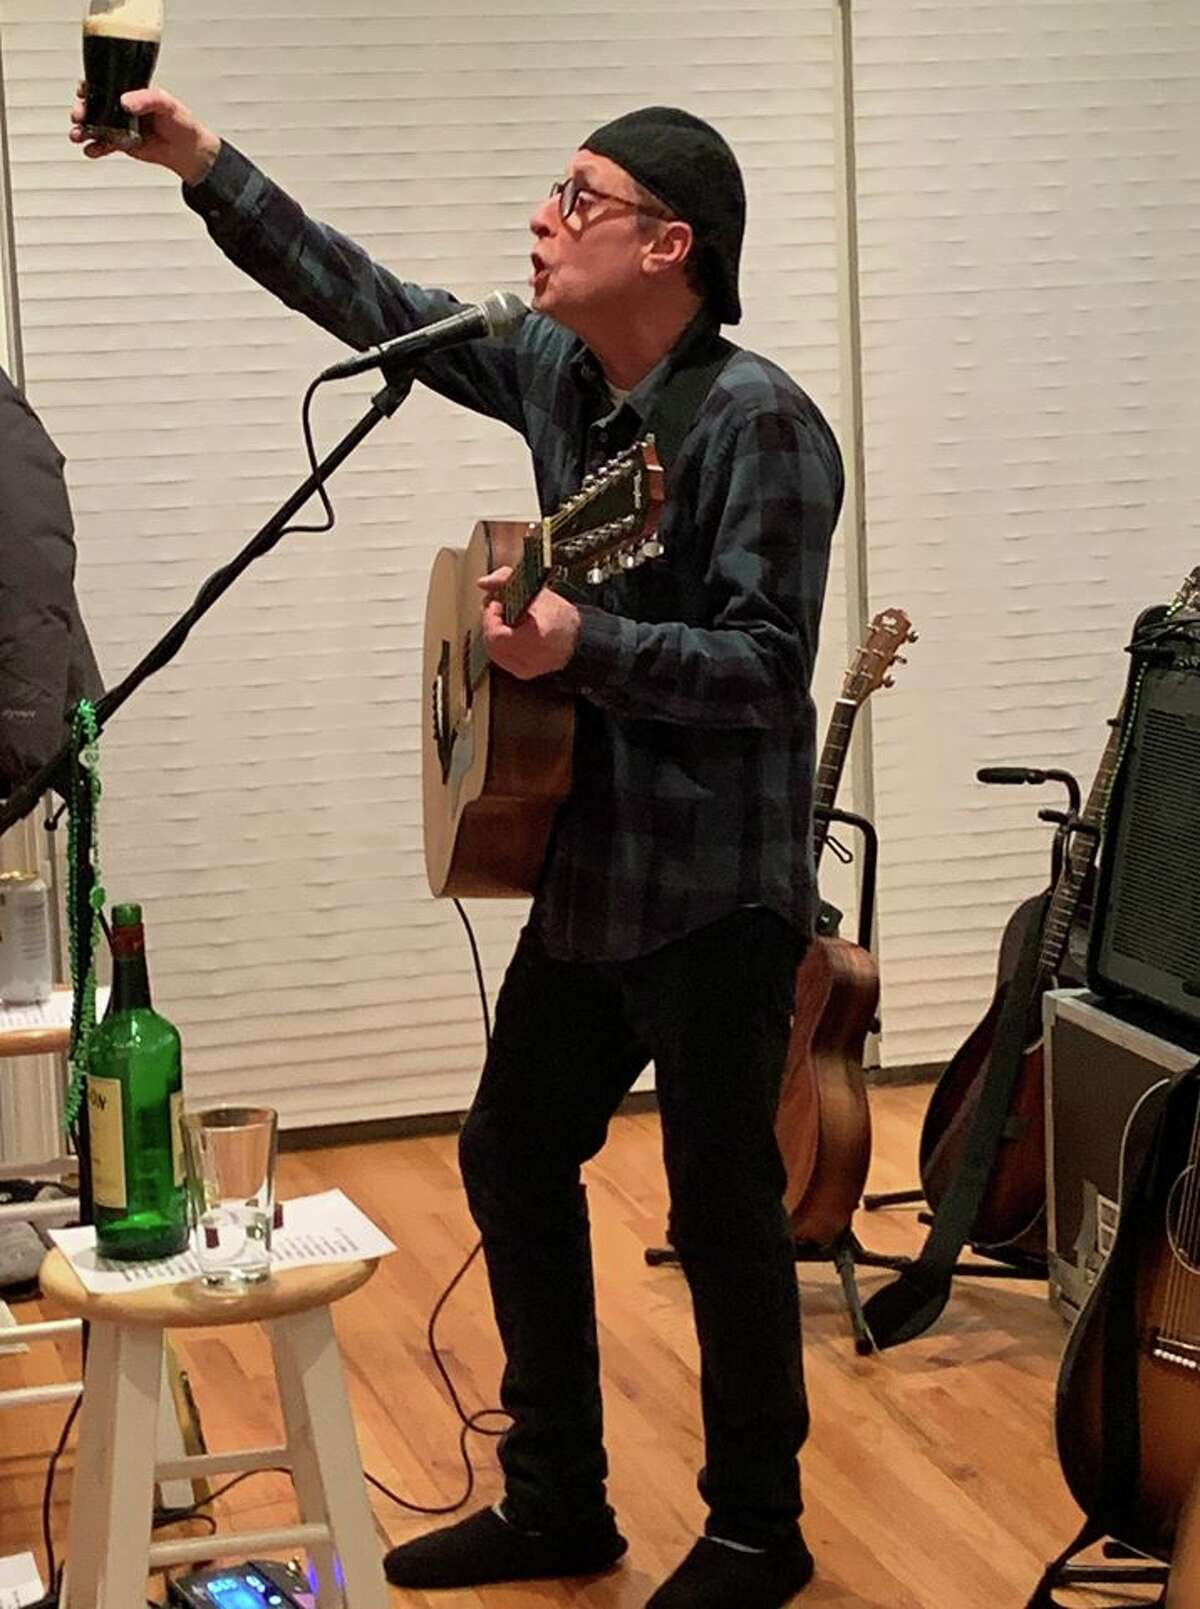 Singer-songwriter Rick Bedrosian, of Delmar, is hosting live, online performances as part of his weekly Home Alone Concert series, Saturday nights at 7 p.m. Bedrosian plays pop, folk, Irish music. Visit his website https://rickbedrosian.com/ or Facebook page to listen in: https://facebook.com/rickbedrosian Here Bedrosian hosts a live, virtual concert for fans on St. Patrick's Day.